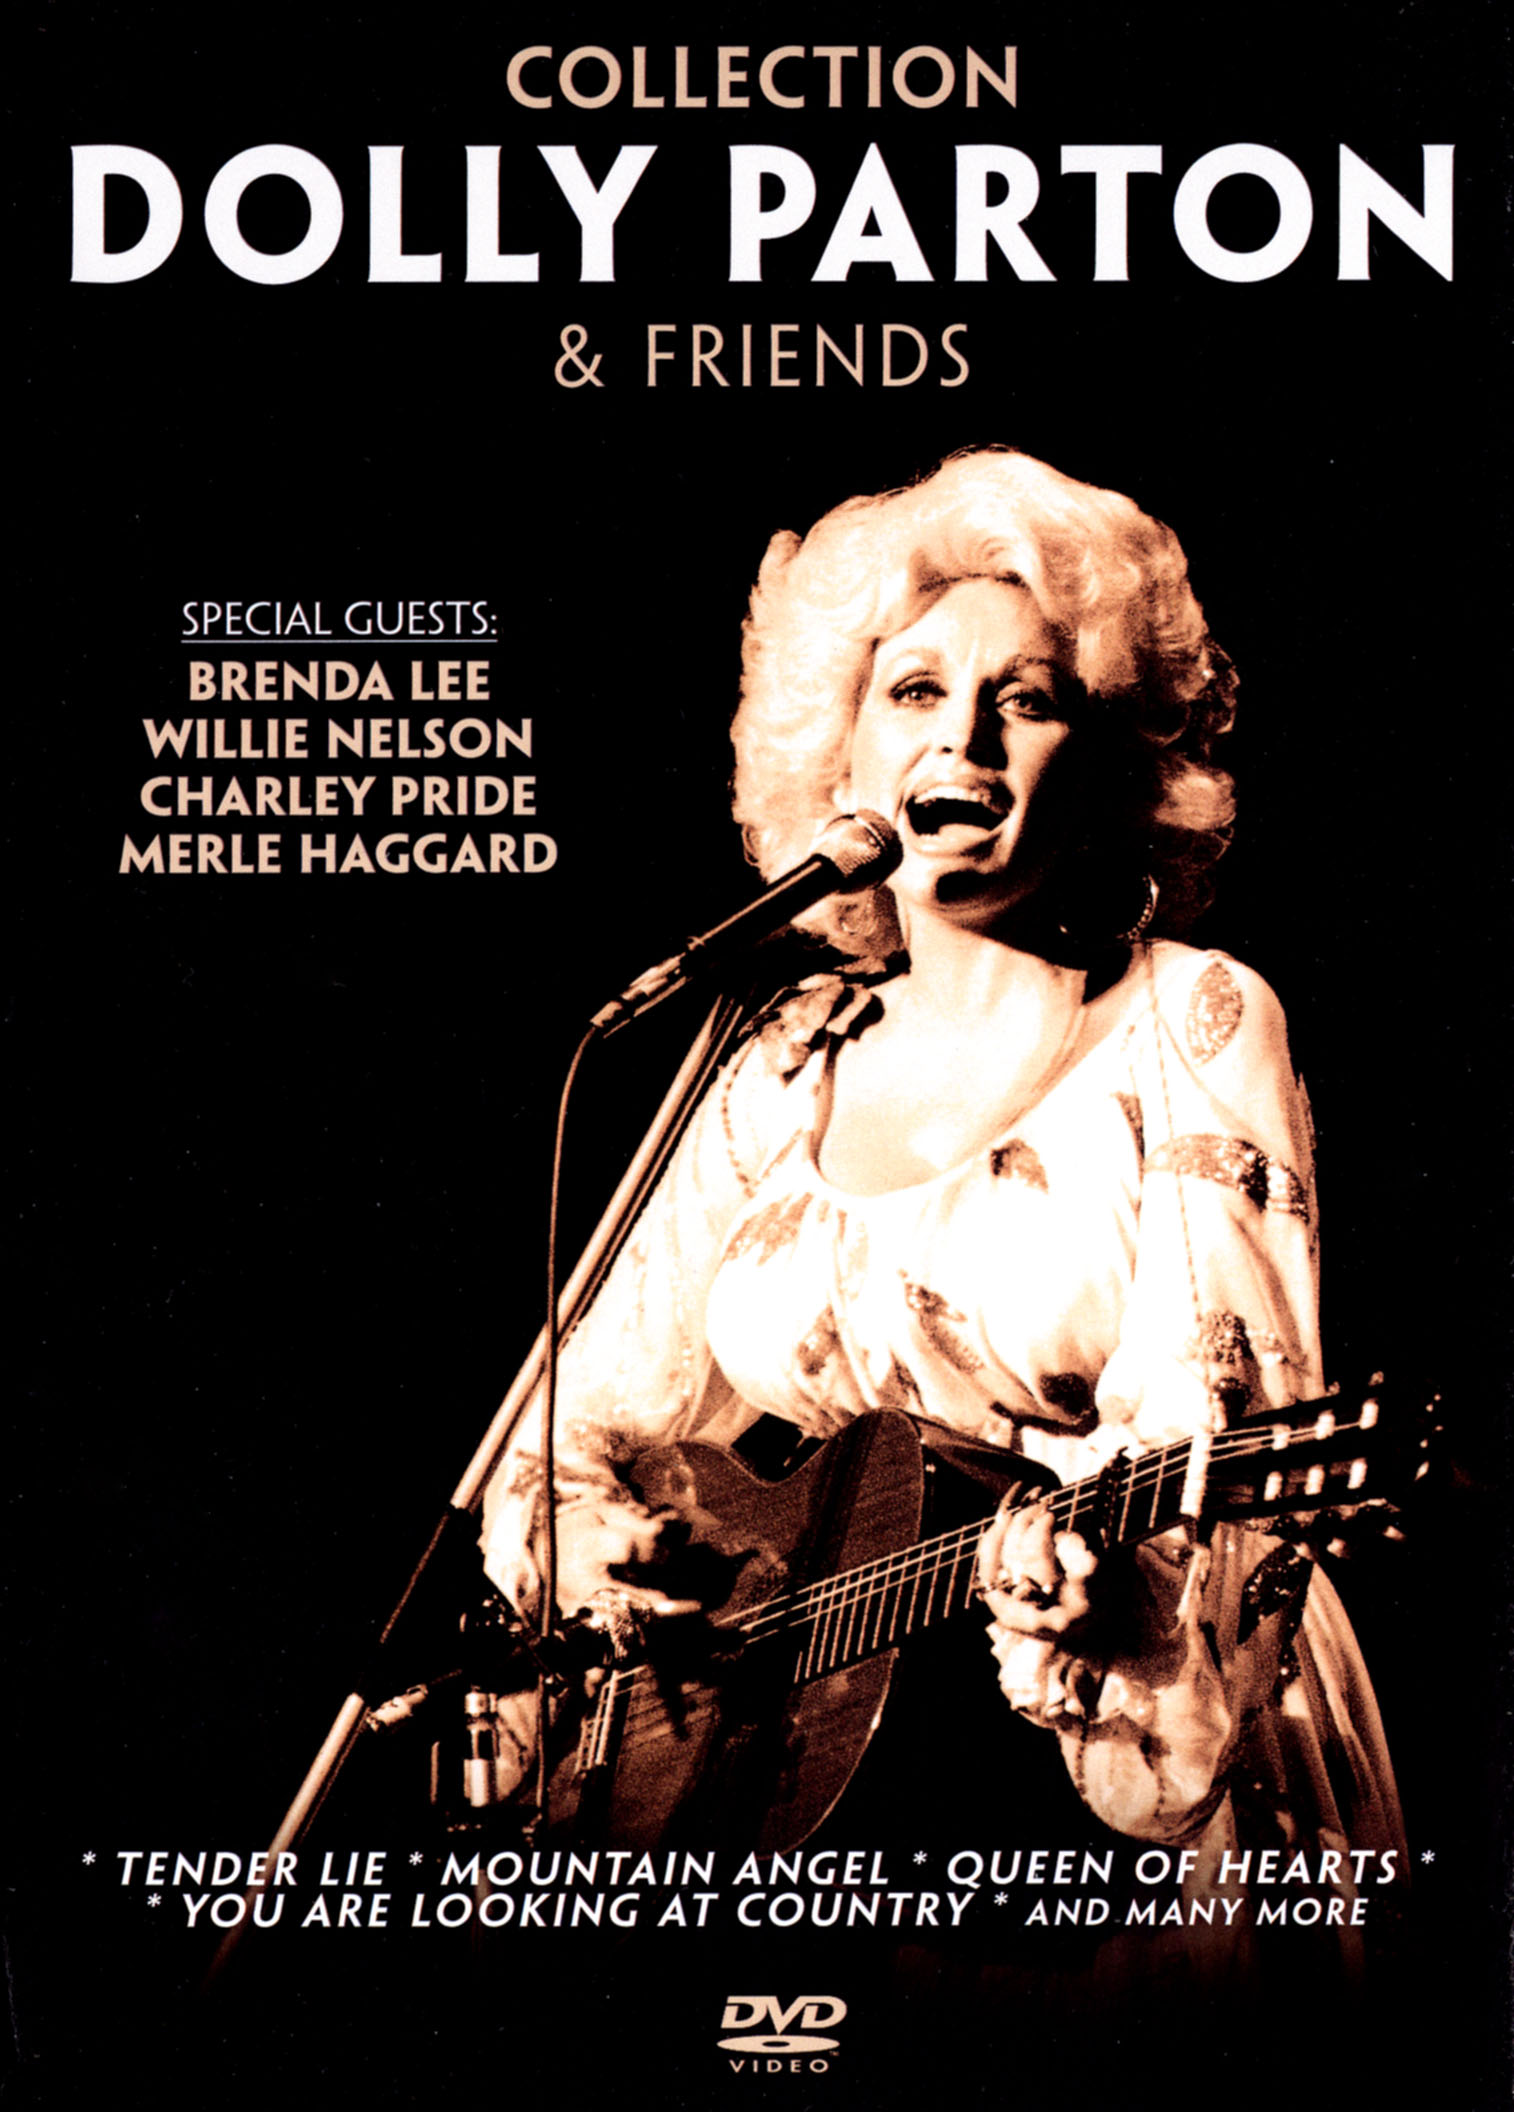 Dolly Parton & Friends: Collection